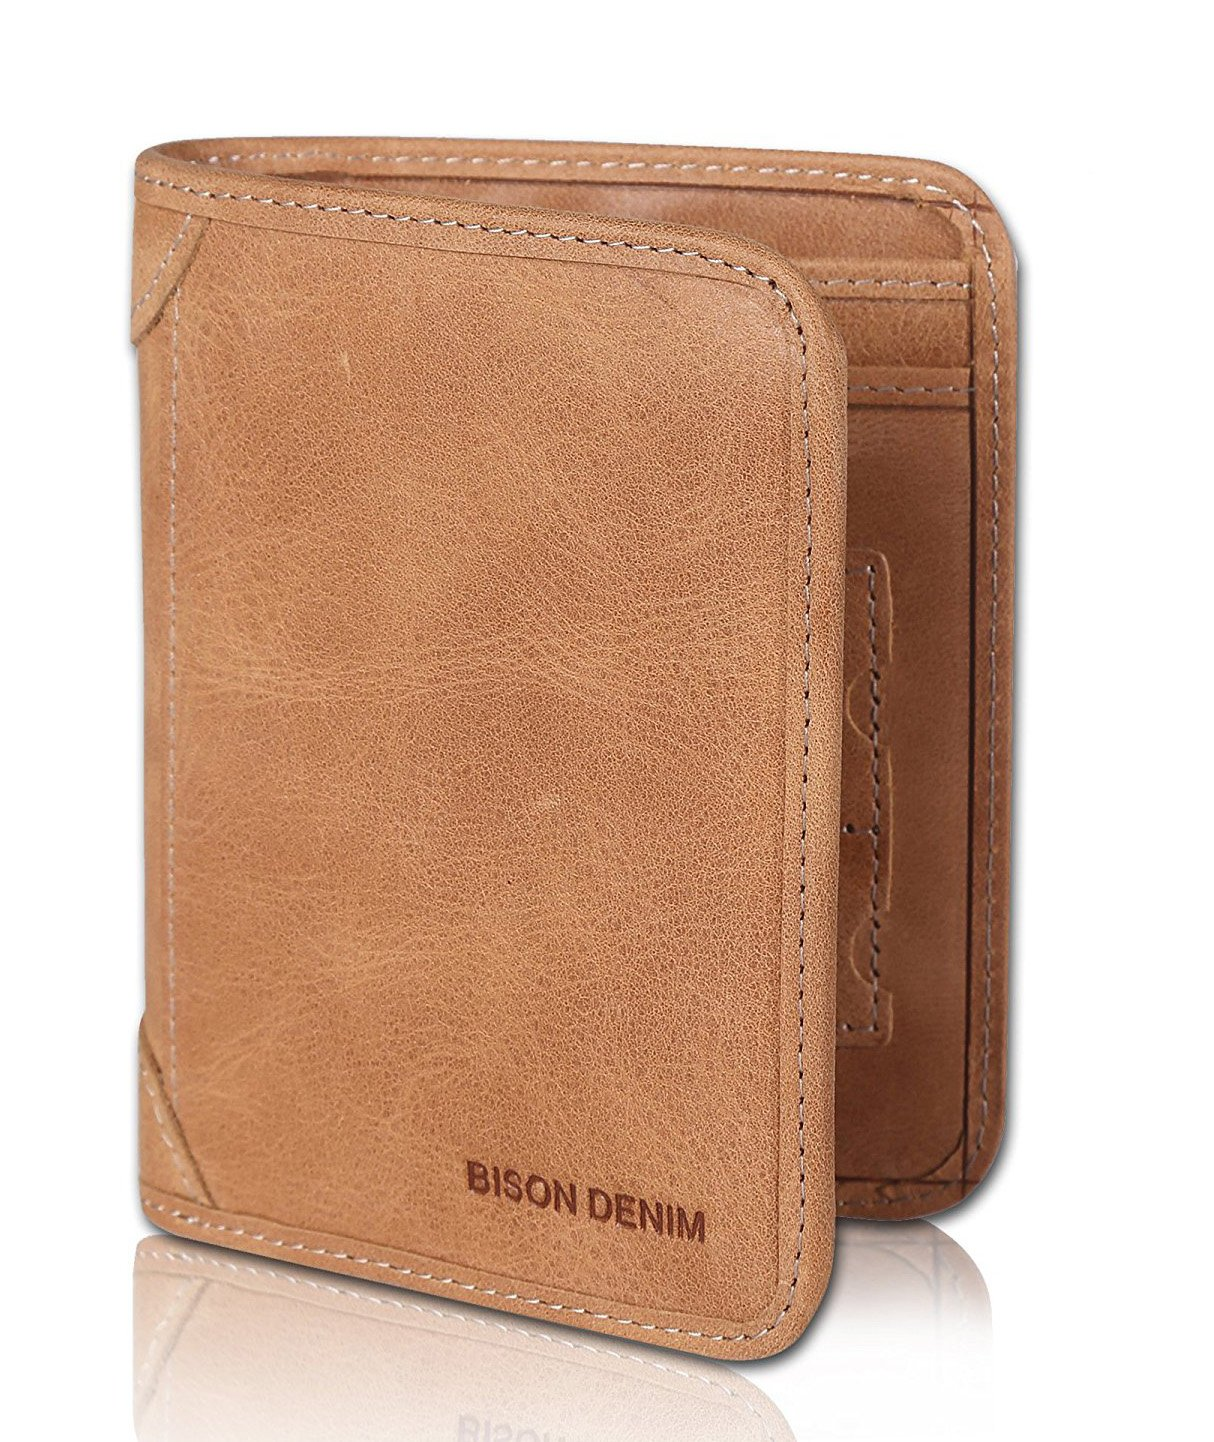 BISON DENIM RFID Blocking Bifold Wallet Front Pocket Genuine Leather Wallets Thin Credit Card Holder for Mens Womens N4321-1